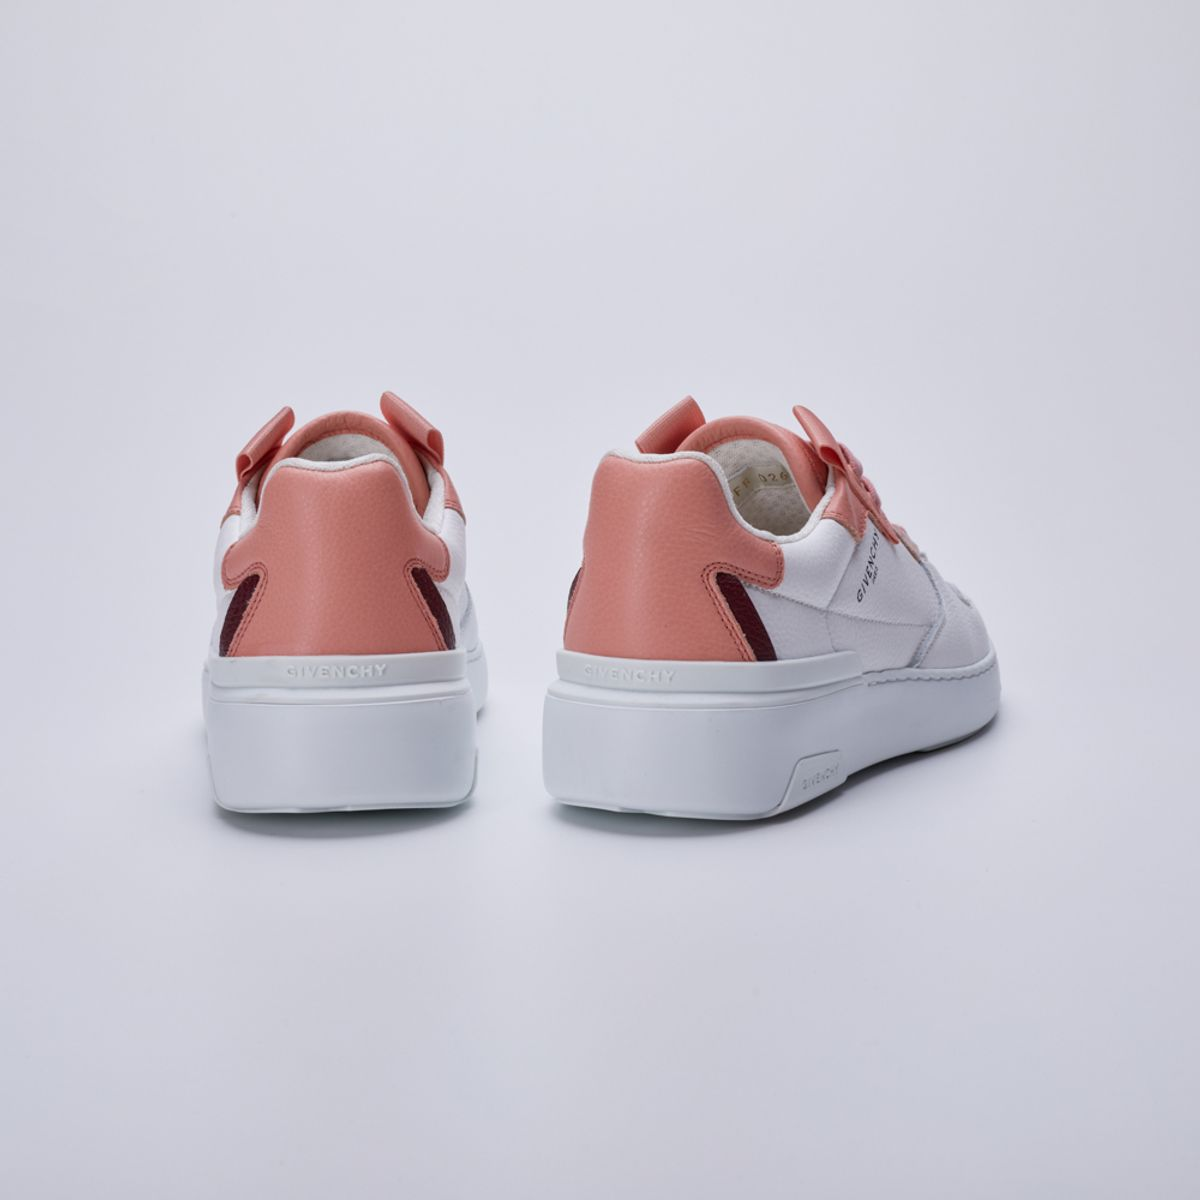 CD070216_9180_3-TENIS-WING-LOW-GIV-BE0010E0W6-FW20